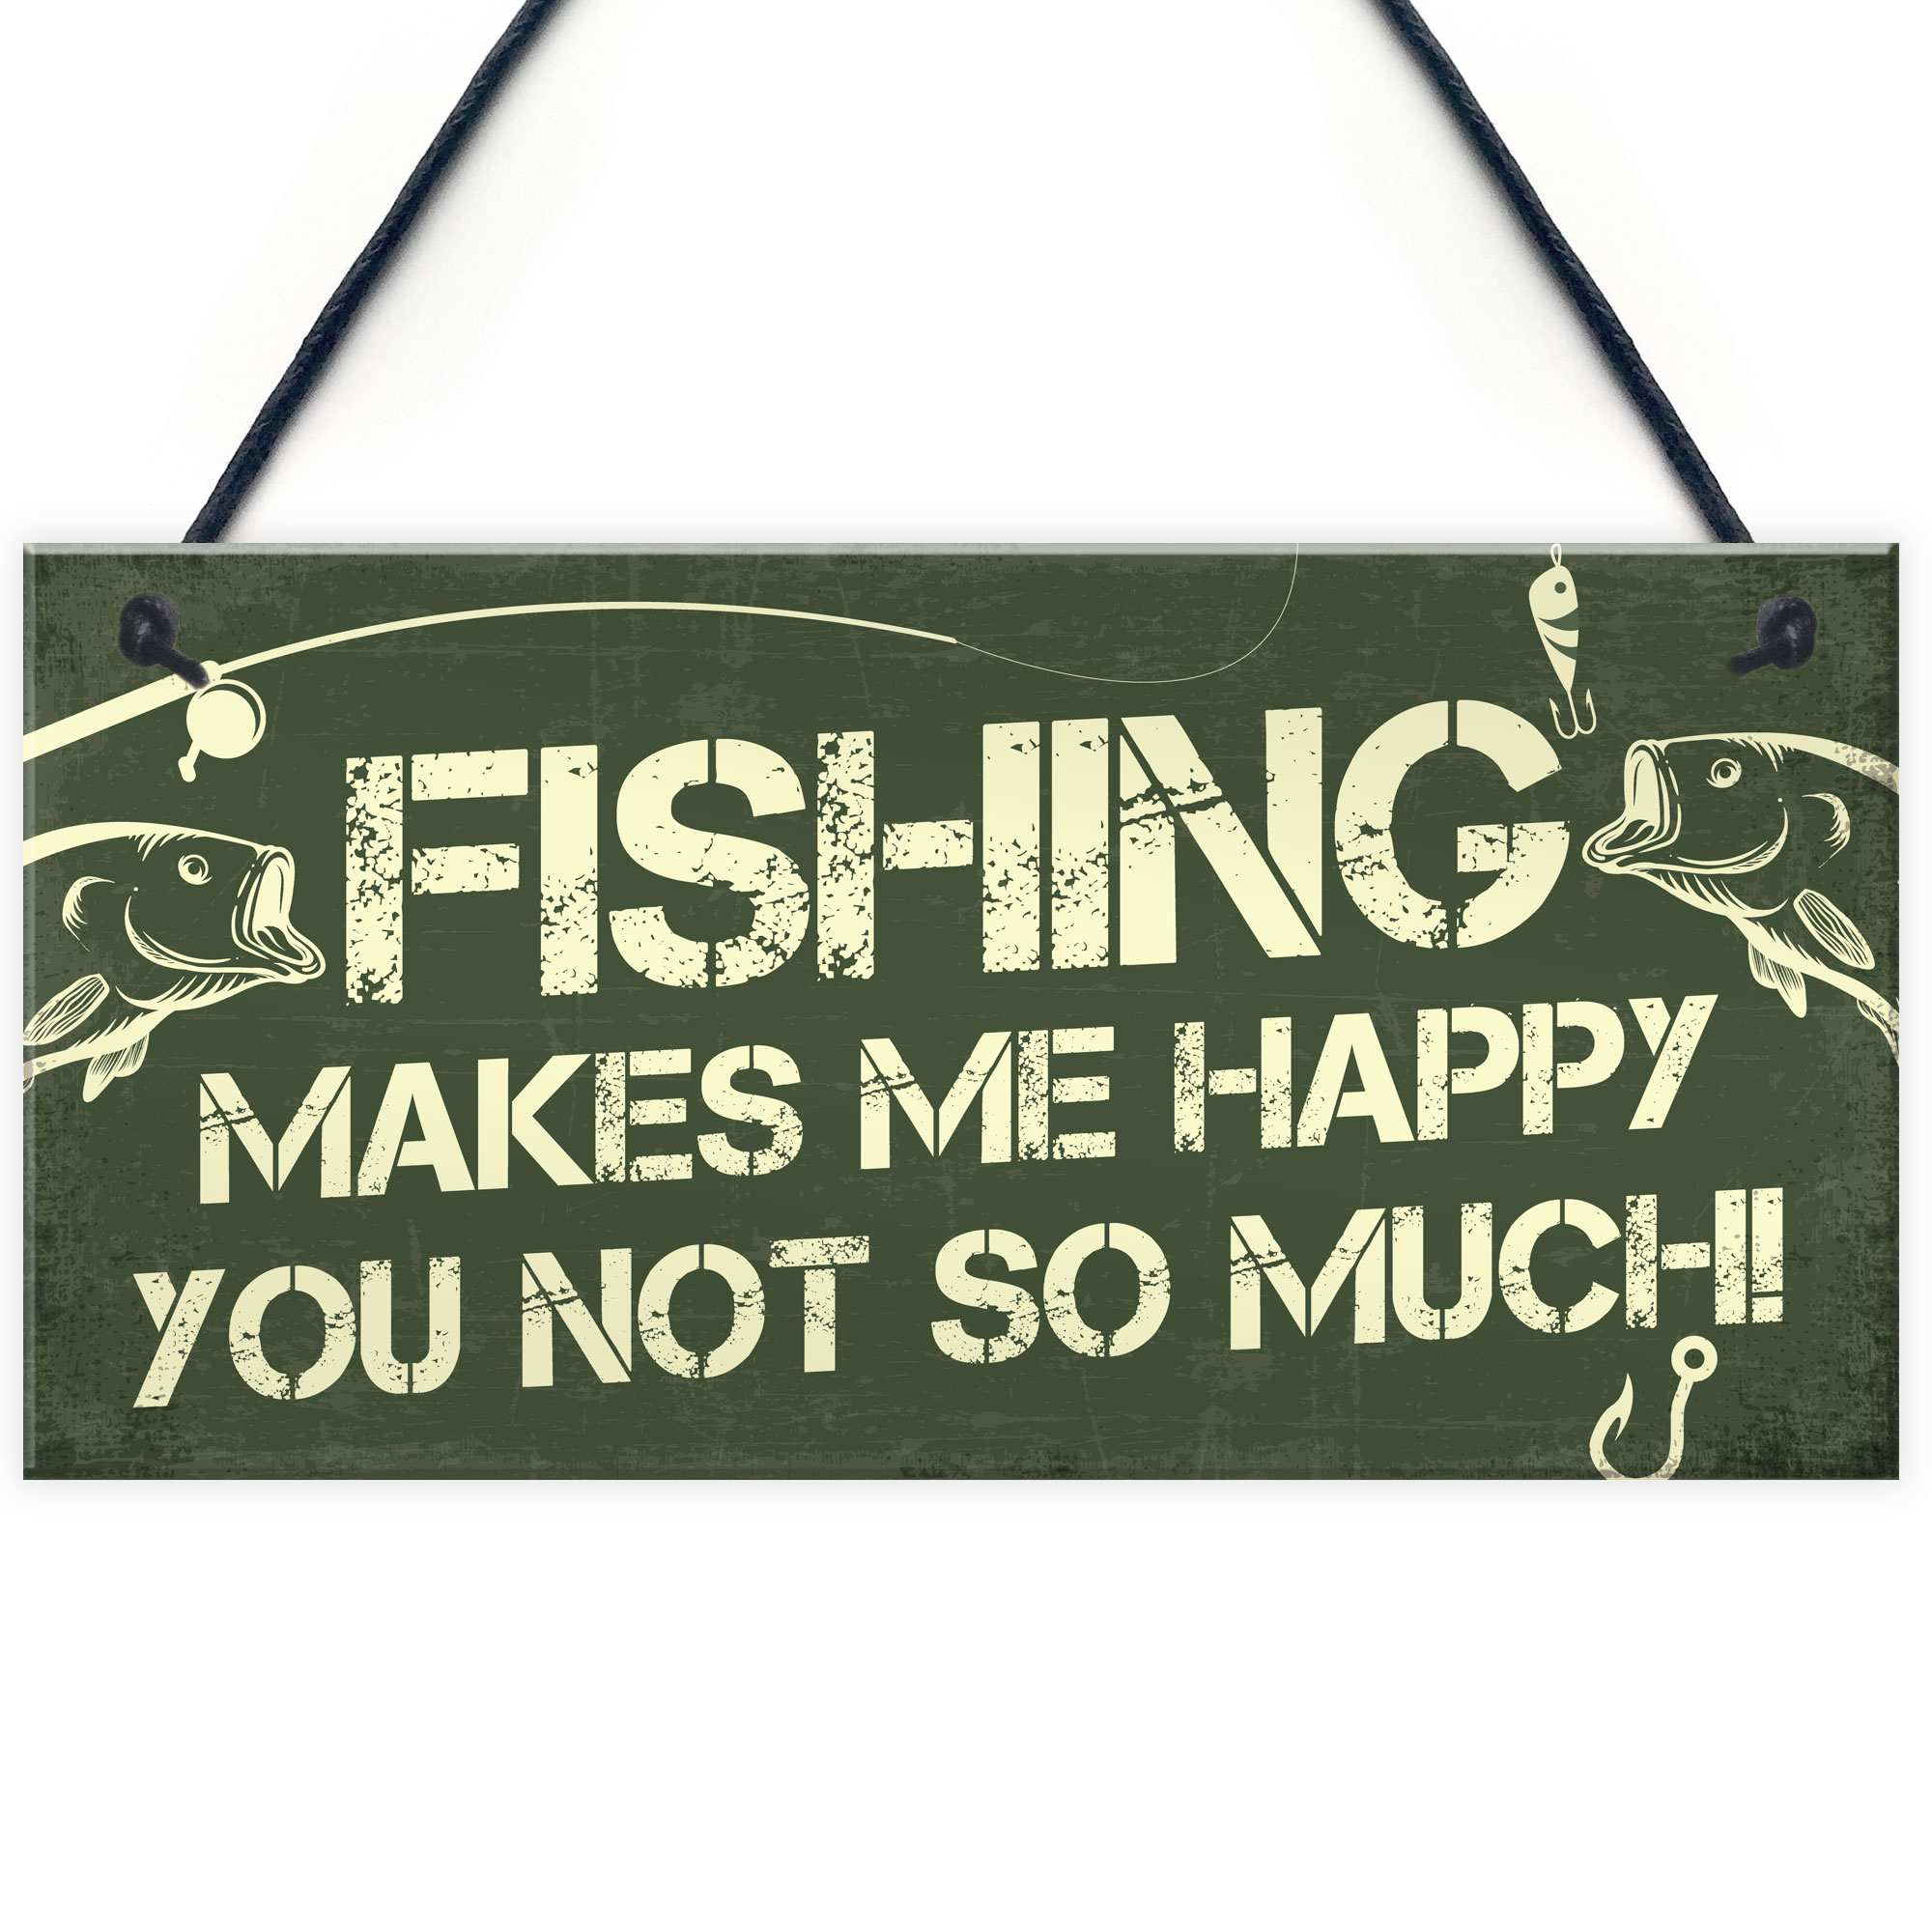 Details About Funny Novelty Fisherman Fishing Gifts For Men Birthday Gift Idea Dad Grandad